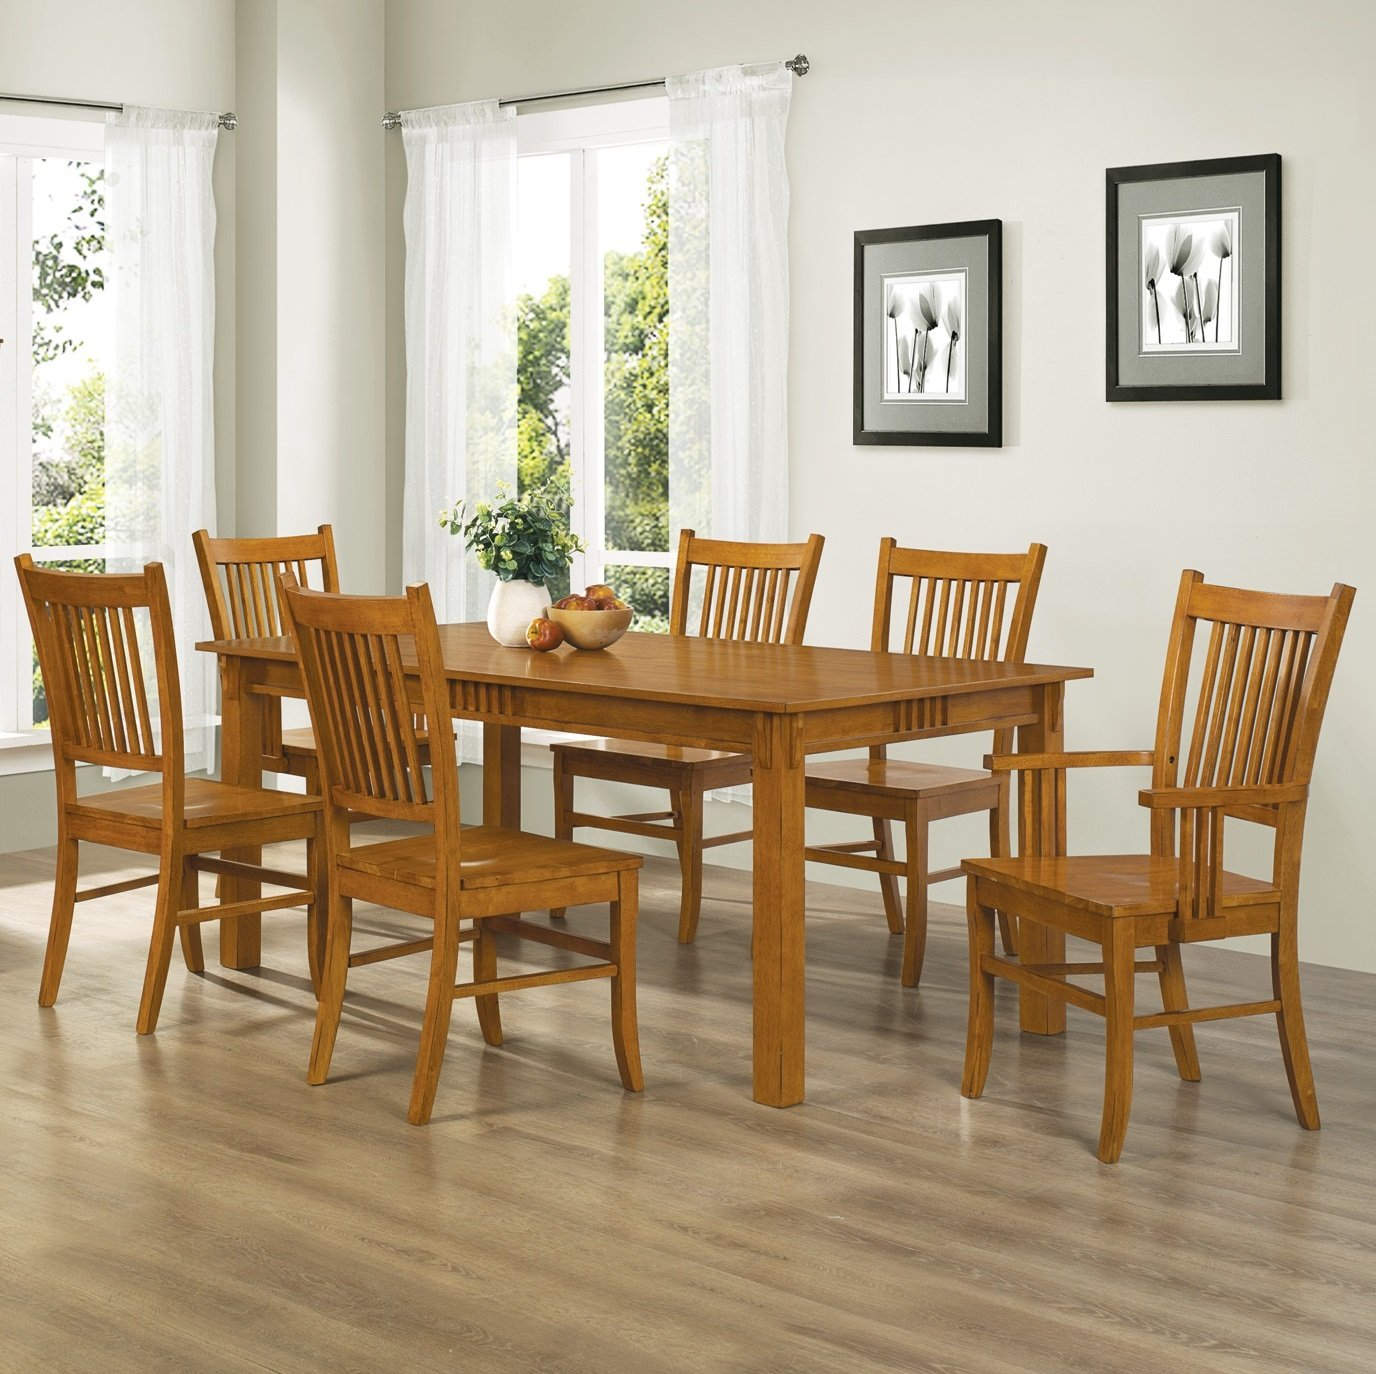 Amazon.com - Coaster Home Furnishings 7-Piece Mission Style Solid Hardwood Dining Table \u0026 Chairs Set - Table \u0026 Chair Sets & Amazon.com - Coaster Home Furnishings 7-Piece Mission Style Solid ...